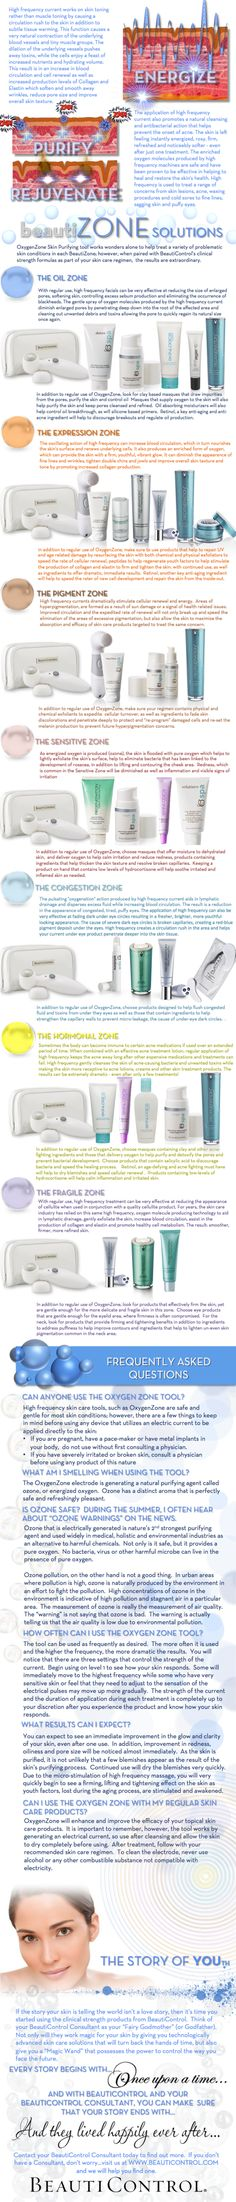 #BeautiControl OxygenZone Skin Purifying Tool Shop my page: http:beautipage.com/stayciesouza